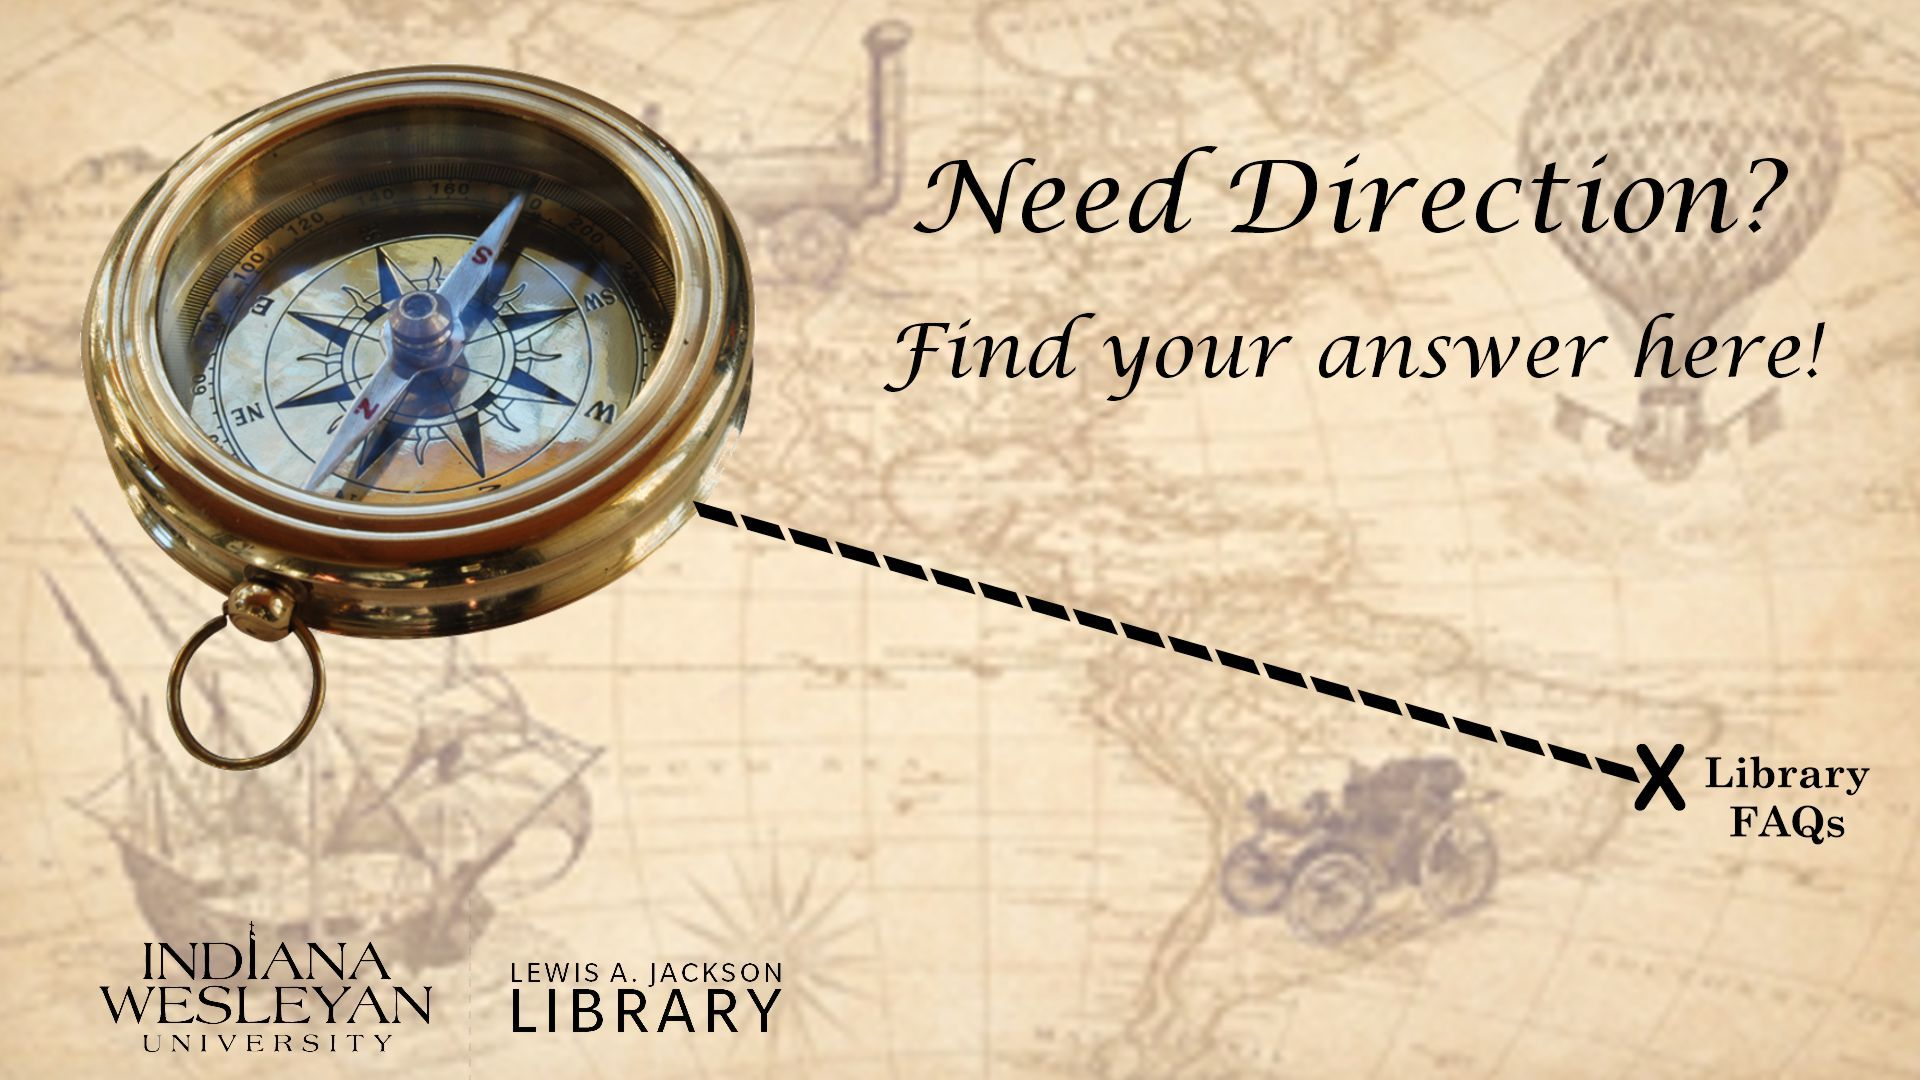 Need Direction? Library FAQs